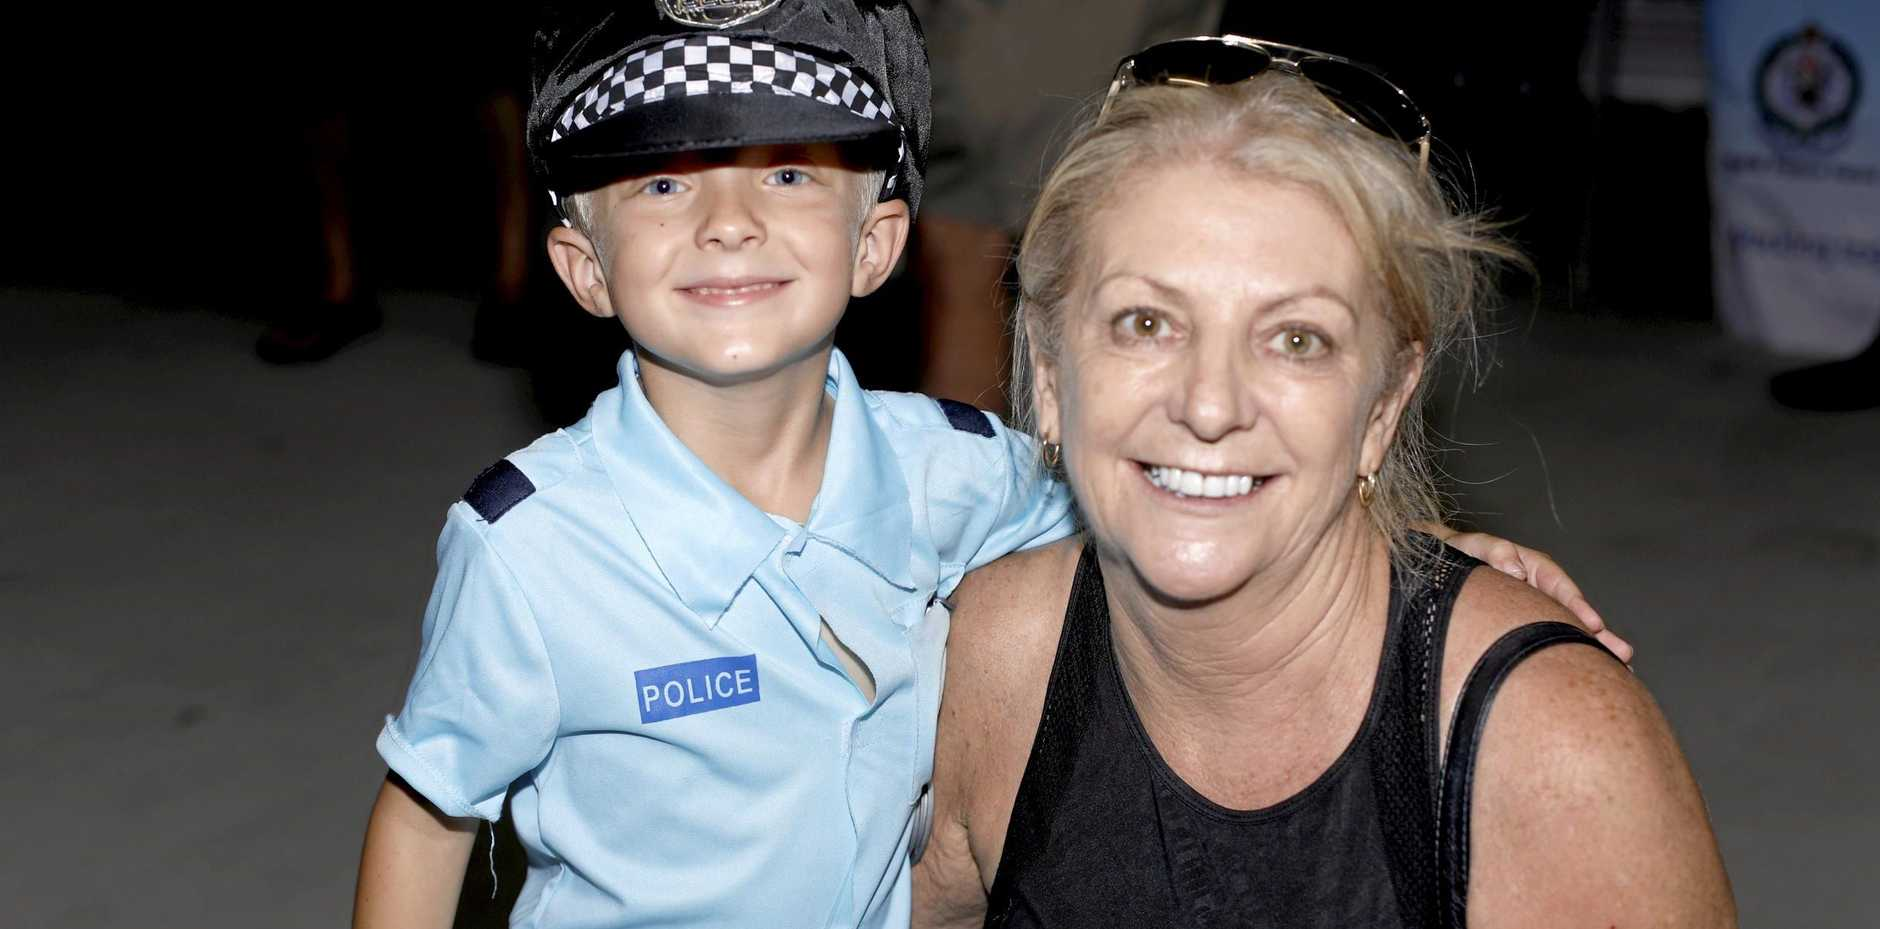 William Renwick, 5, from Banora Point with his nan Vicki Barber at the Tweed Heads Police Station Open Day on Sunday, February 18.